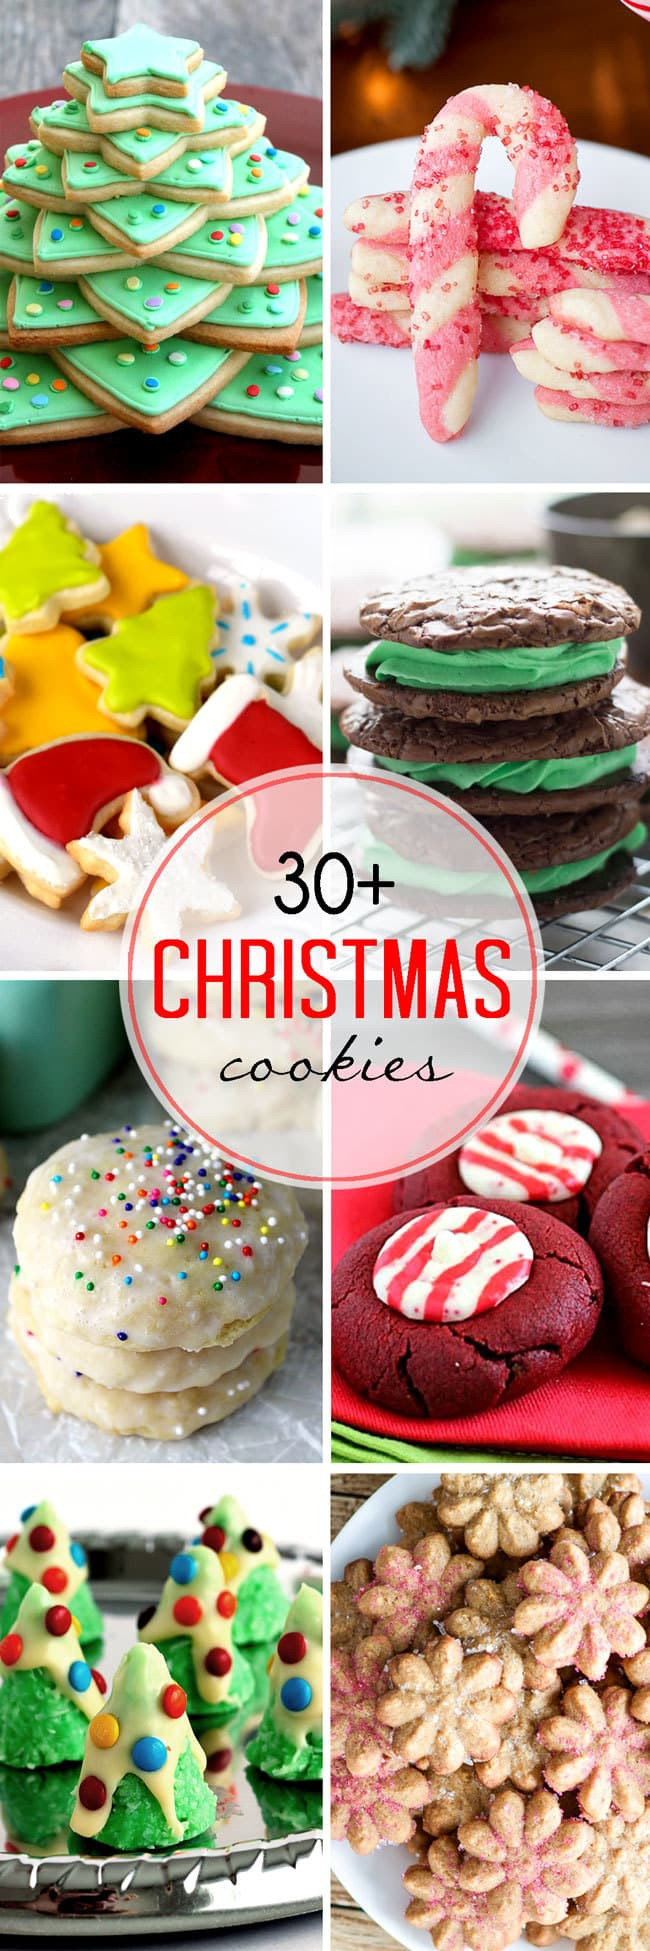 The Best Christmas Cookies  Over 30 of the Best Christmas Cookies from Your Favorite